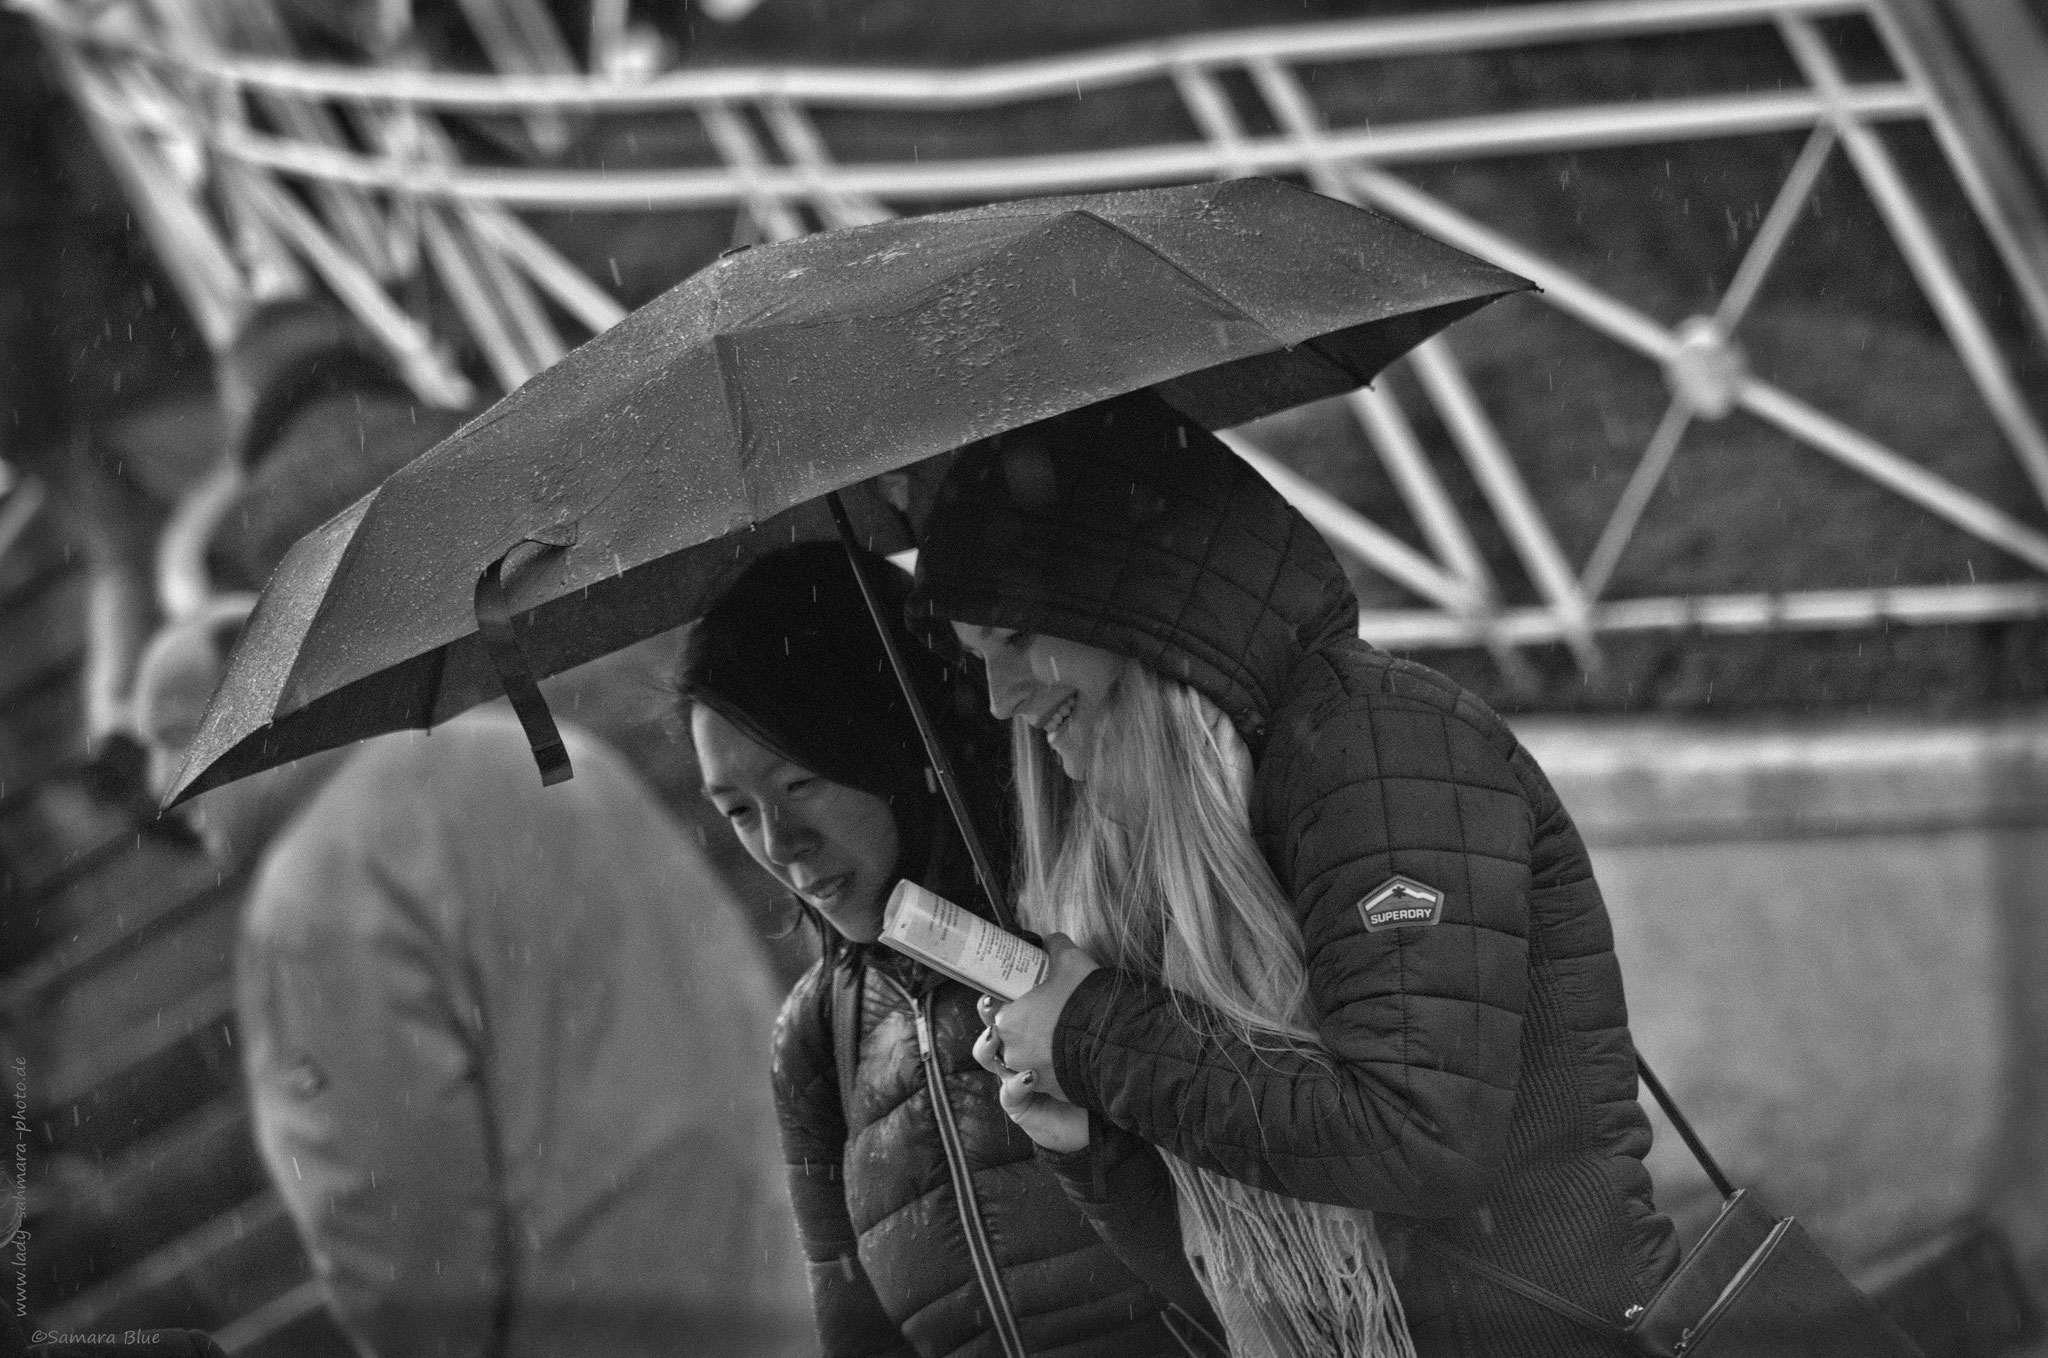 Under the Umbrella - Letzter Renntag der Saison 2017 Krefelder Rennclub 1997 e.V.  - Lady-Sahmara-Photo